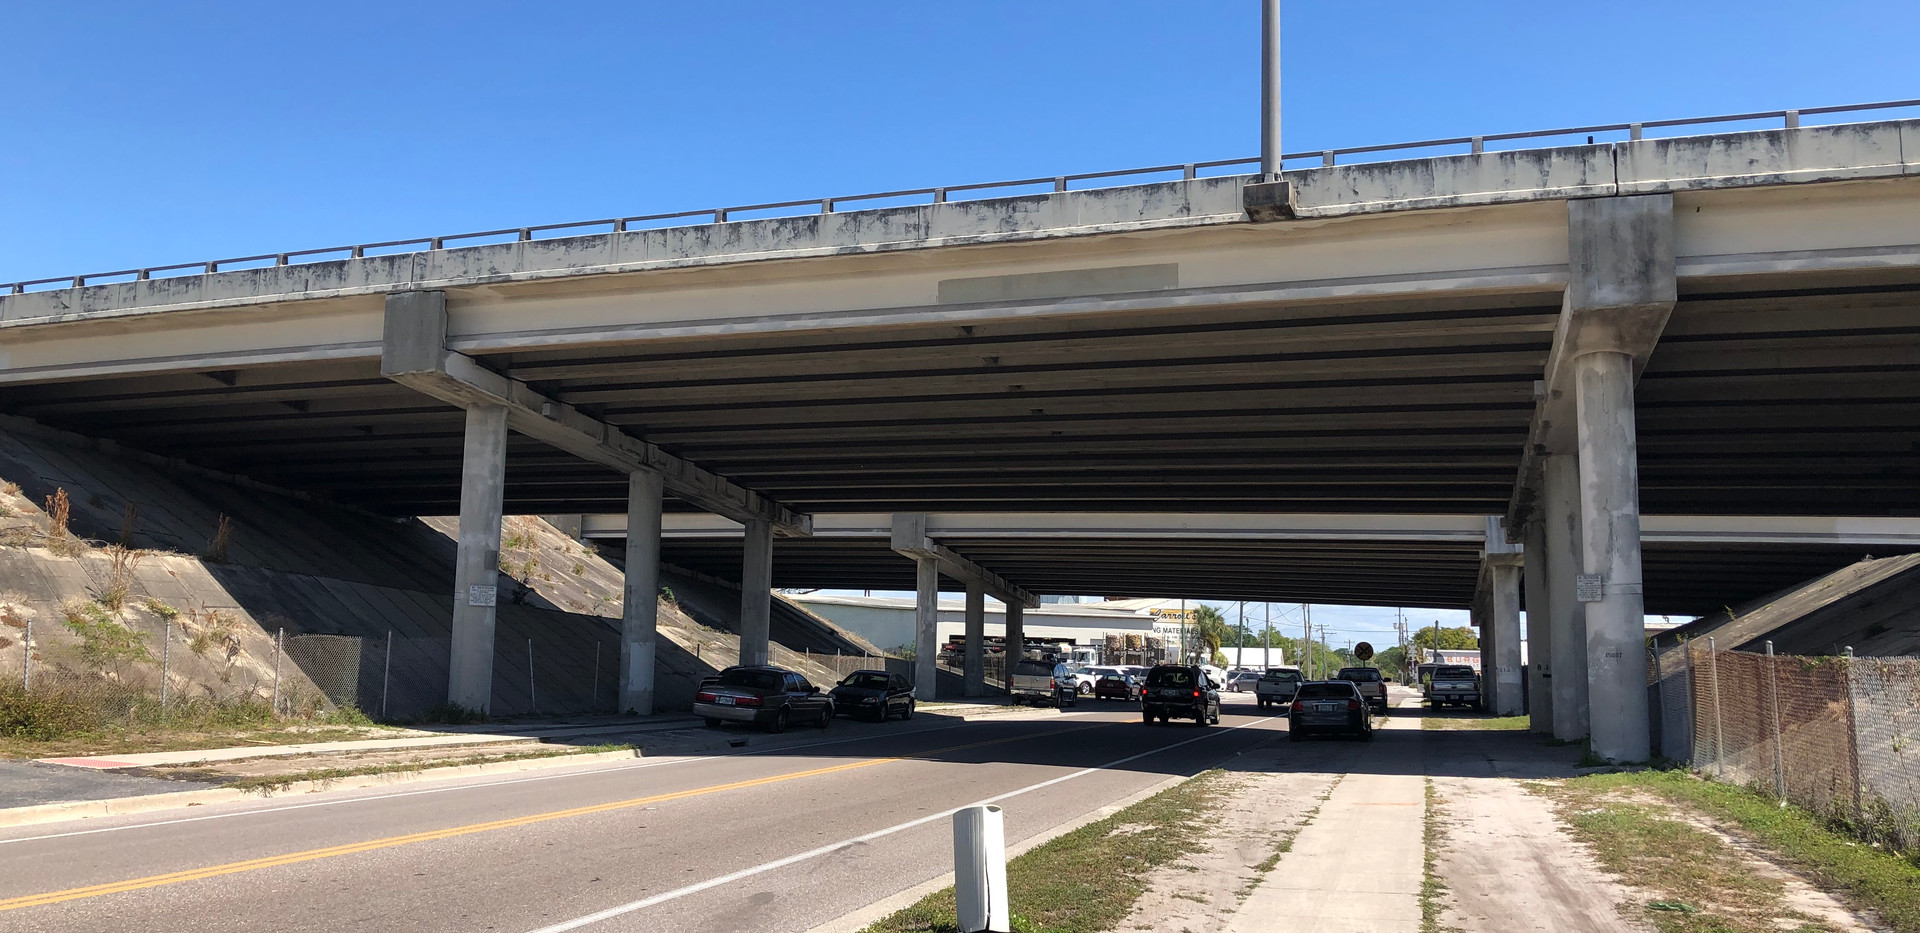 13th Ave. N Overpass